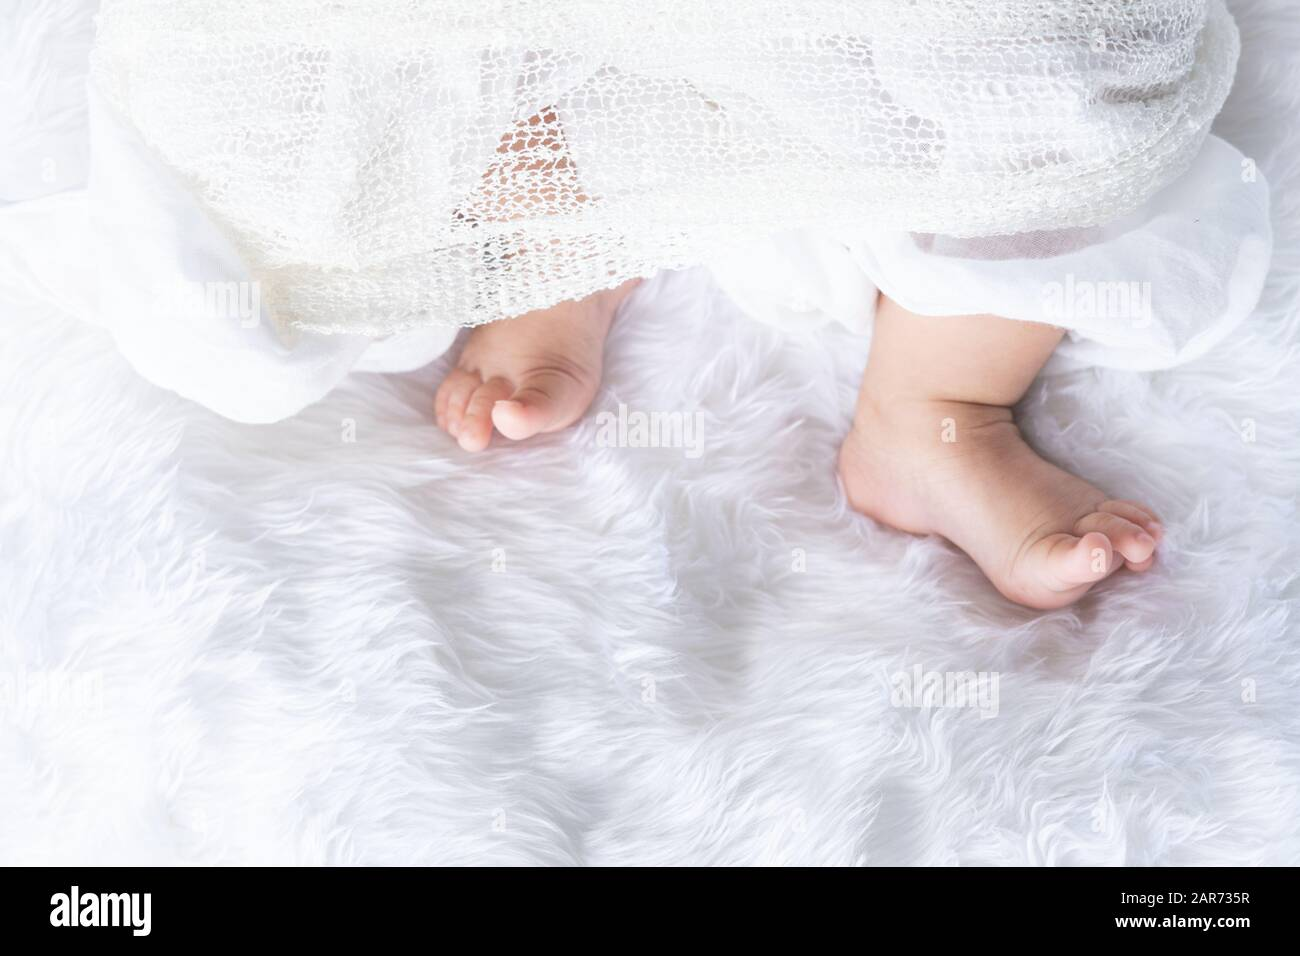 Cute Newborn Baby Girl In White Blanket On Nursery Bed Adorable New Born Child Little Boy Eyes Look People Family New Childhood Infant Soft Skin P Stock Photo Alamy